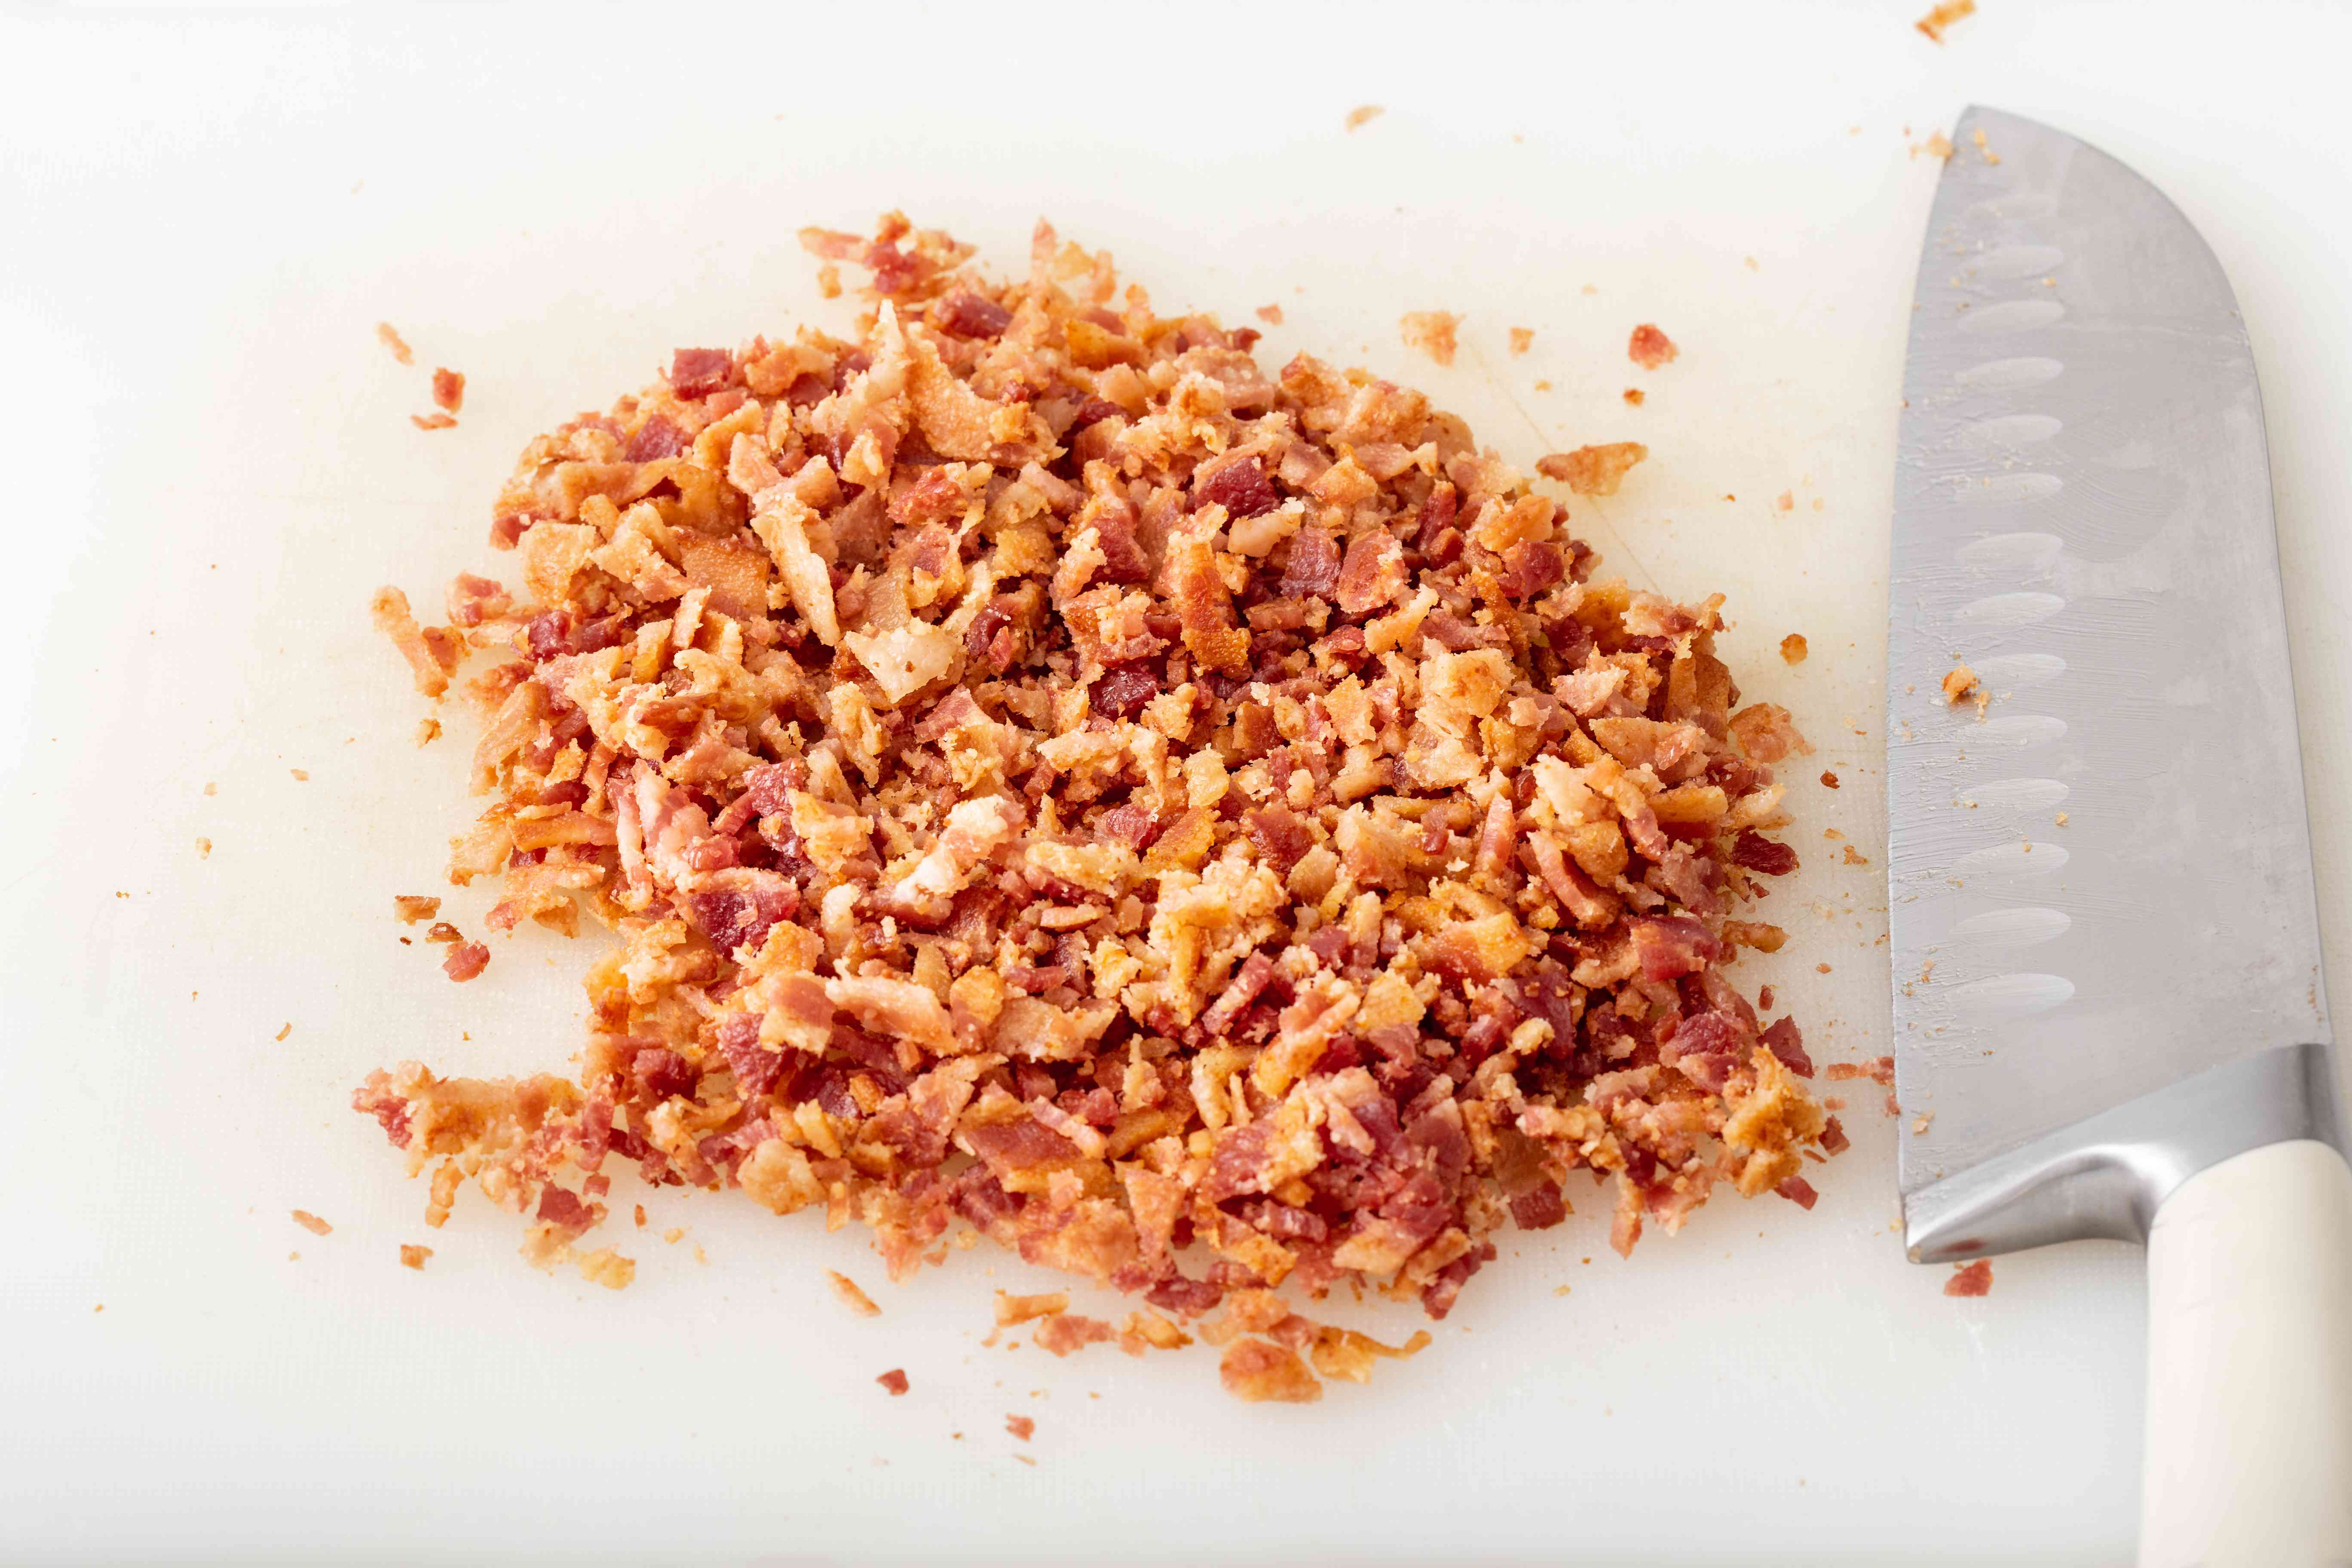 Chopped bacon on a cutting board to make the best potato salad recipe.